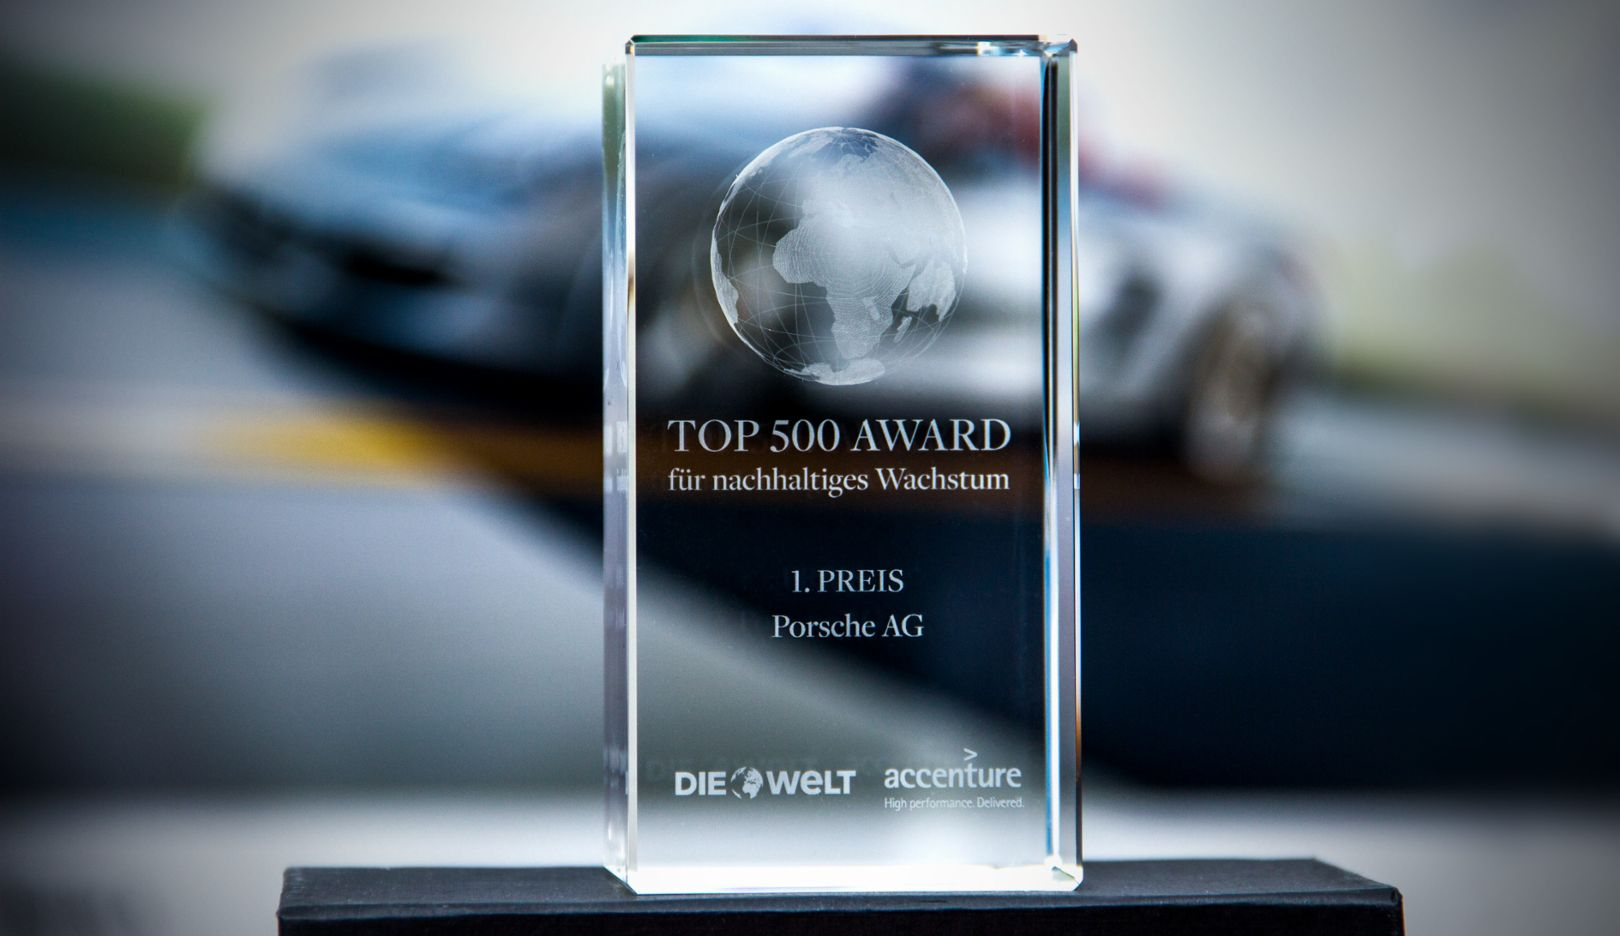 Top-500-Award, Porsche AG, 2015